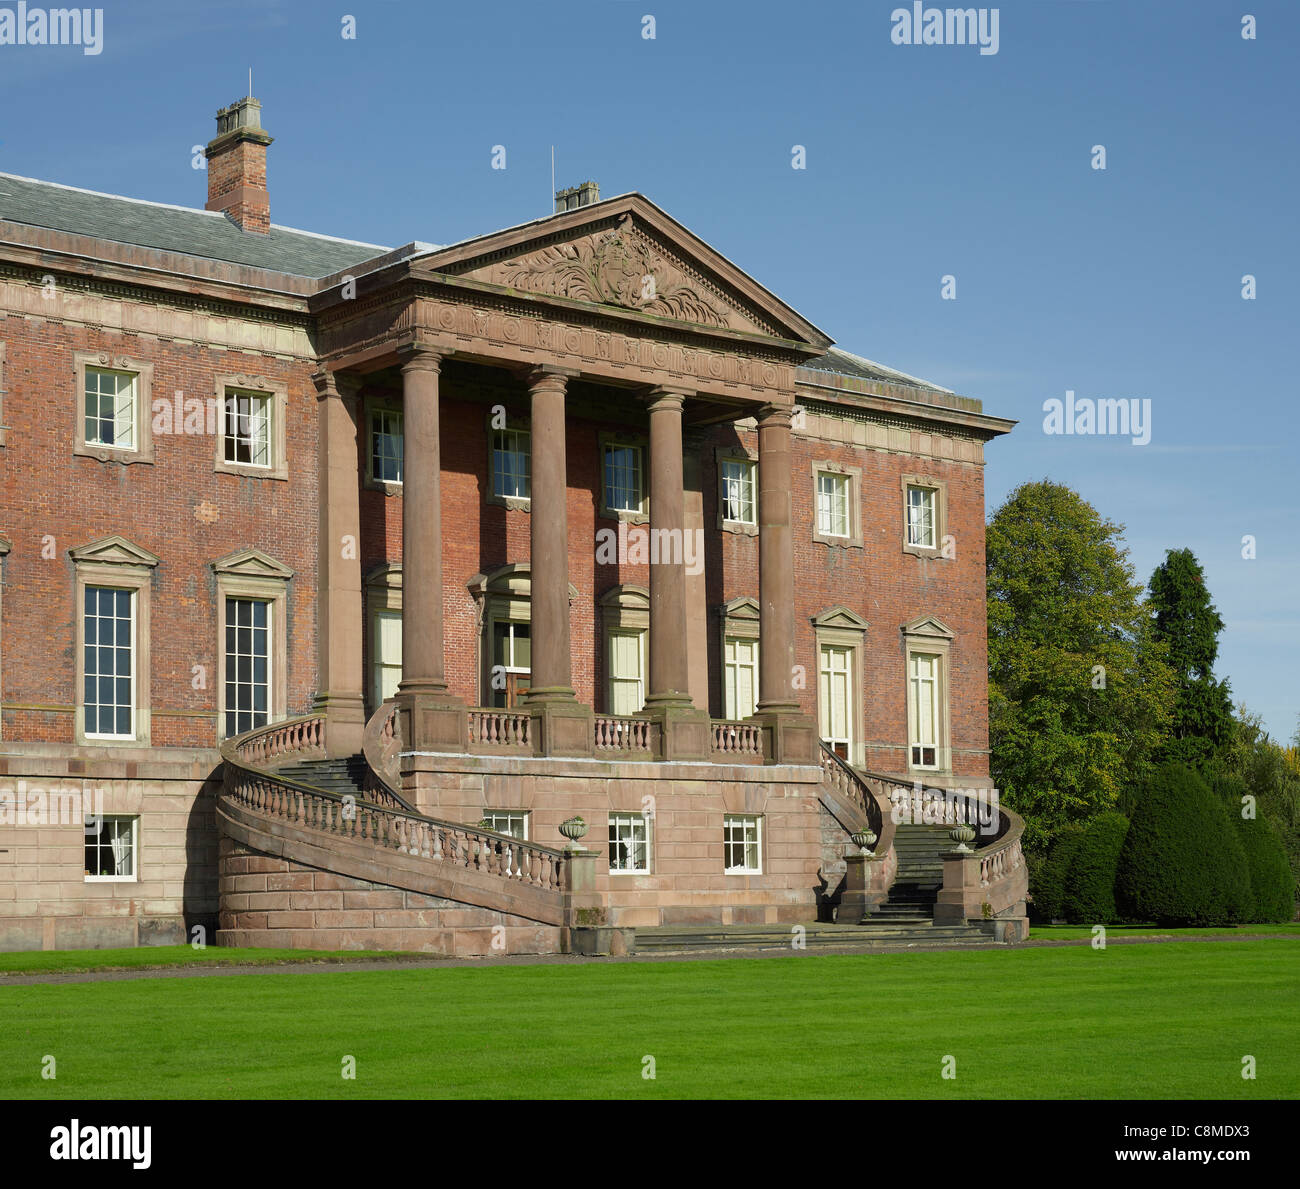 Tabley House, Cheshire - Stock Image